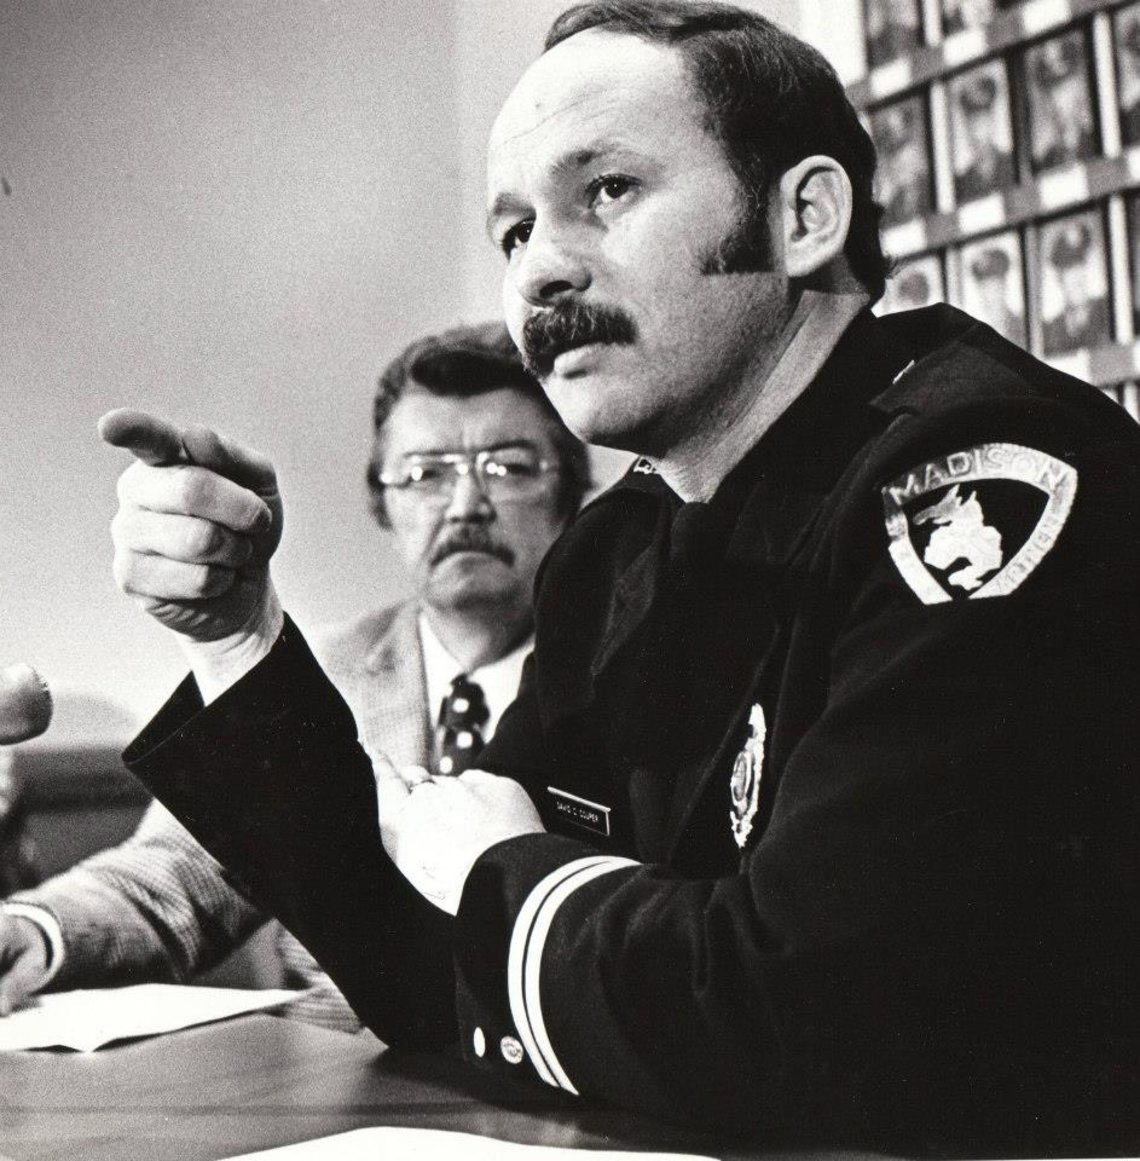 David C. Couper, right, in an undated photograph, during his tenure as chief of police.